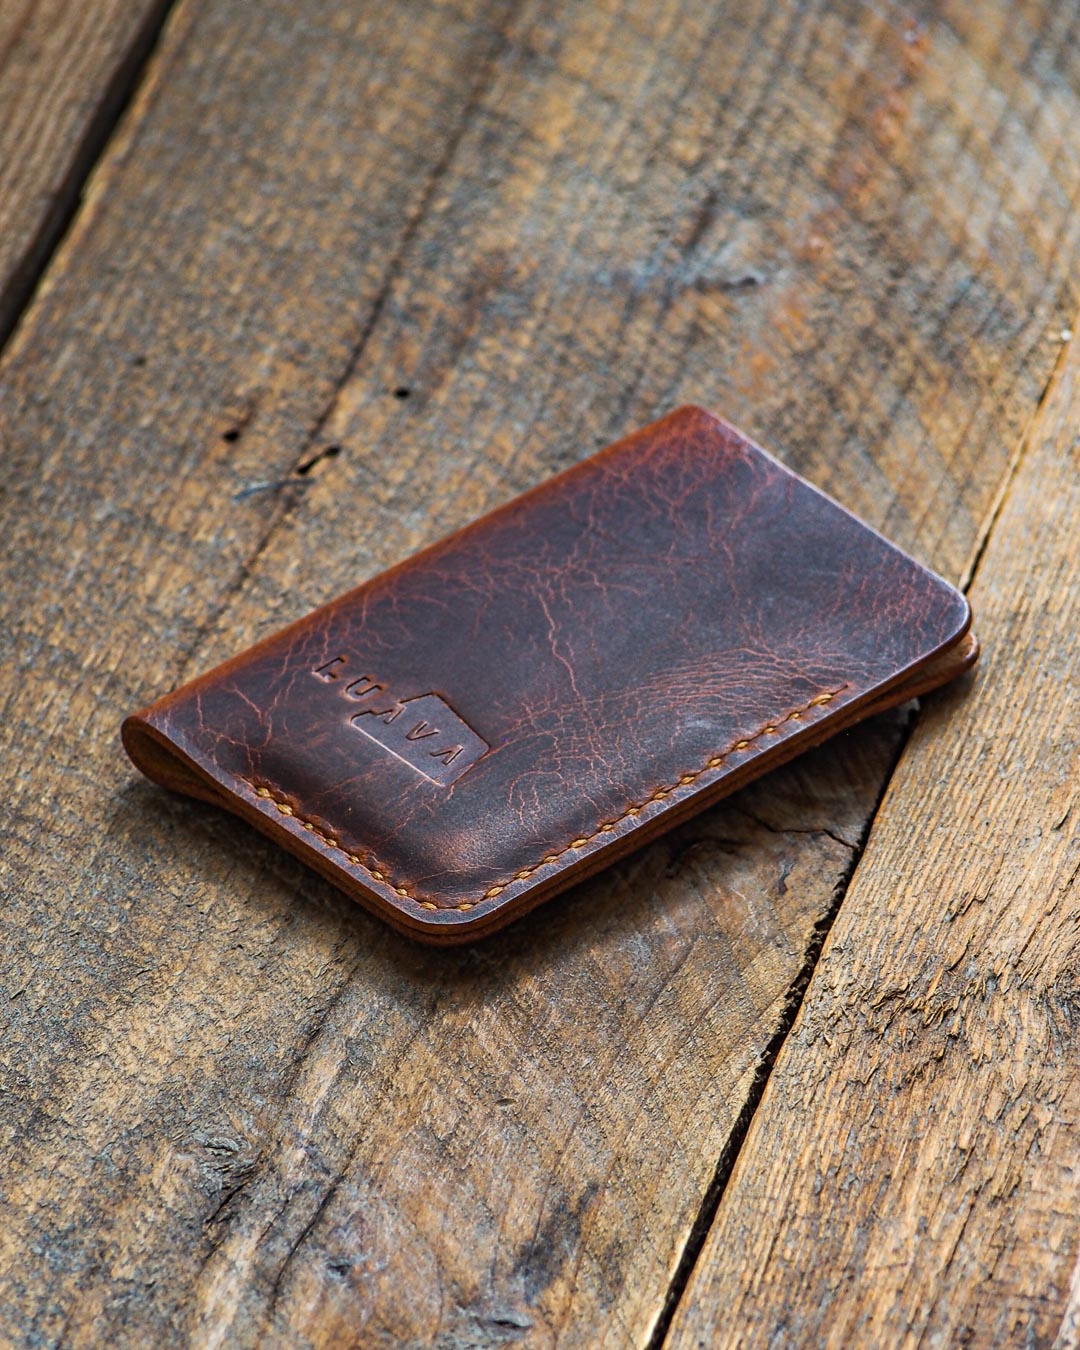 My first wallet design and still one of my all time favorites as it's practical, small, convenient and simple. It's made out of vegetable tanned leather and is a good match for a true minimalist.